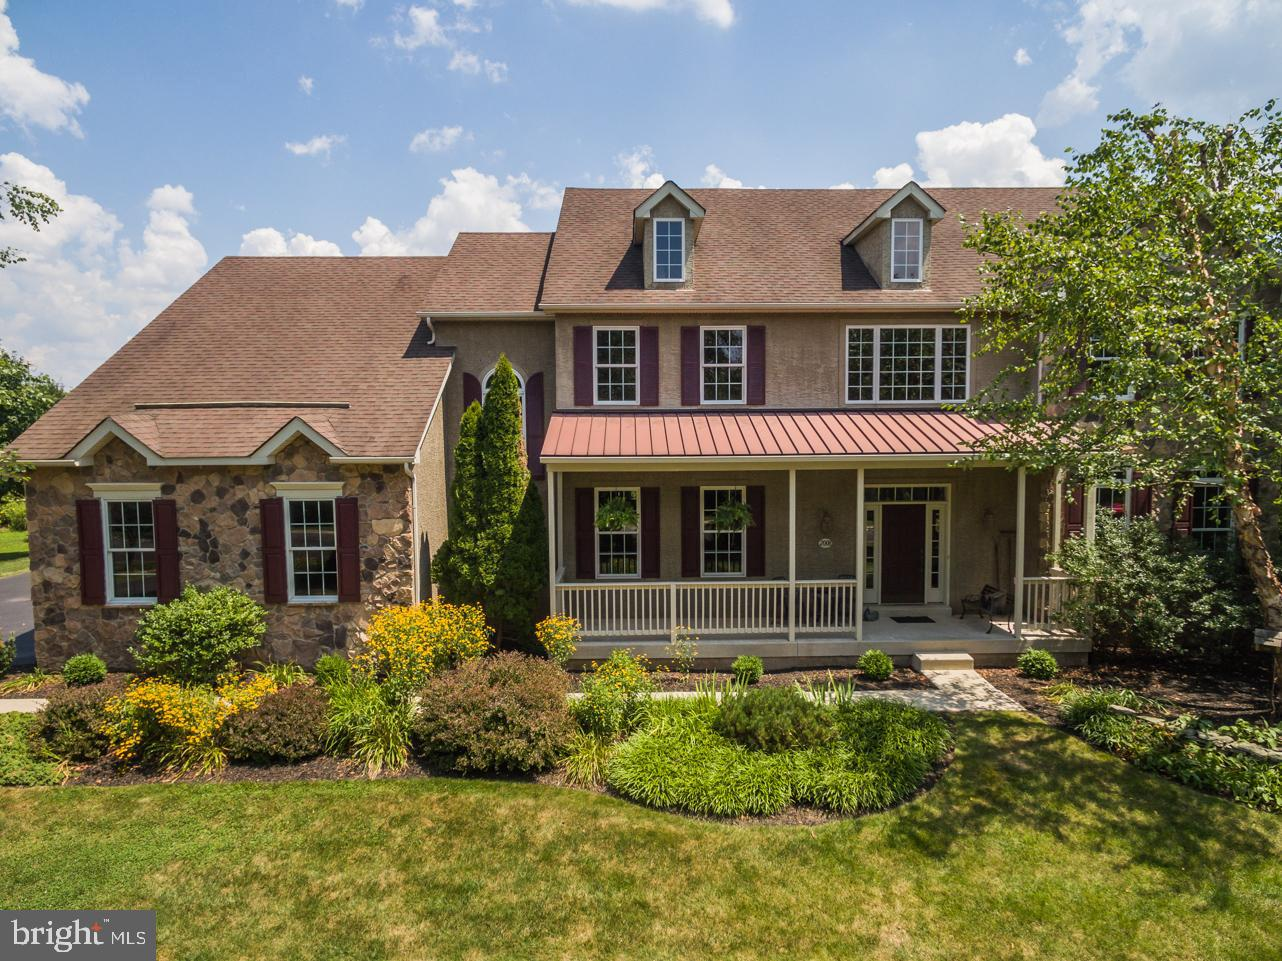 2008 CEDARS HILL ROAD, WORCESTER, PA 19490